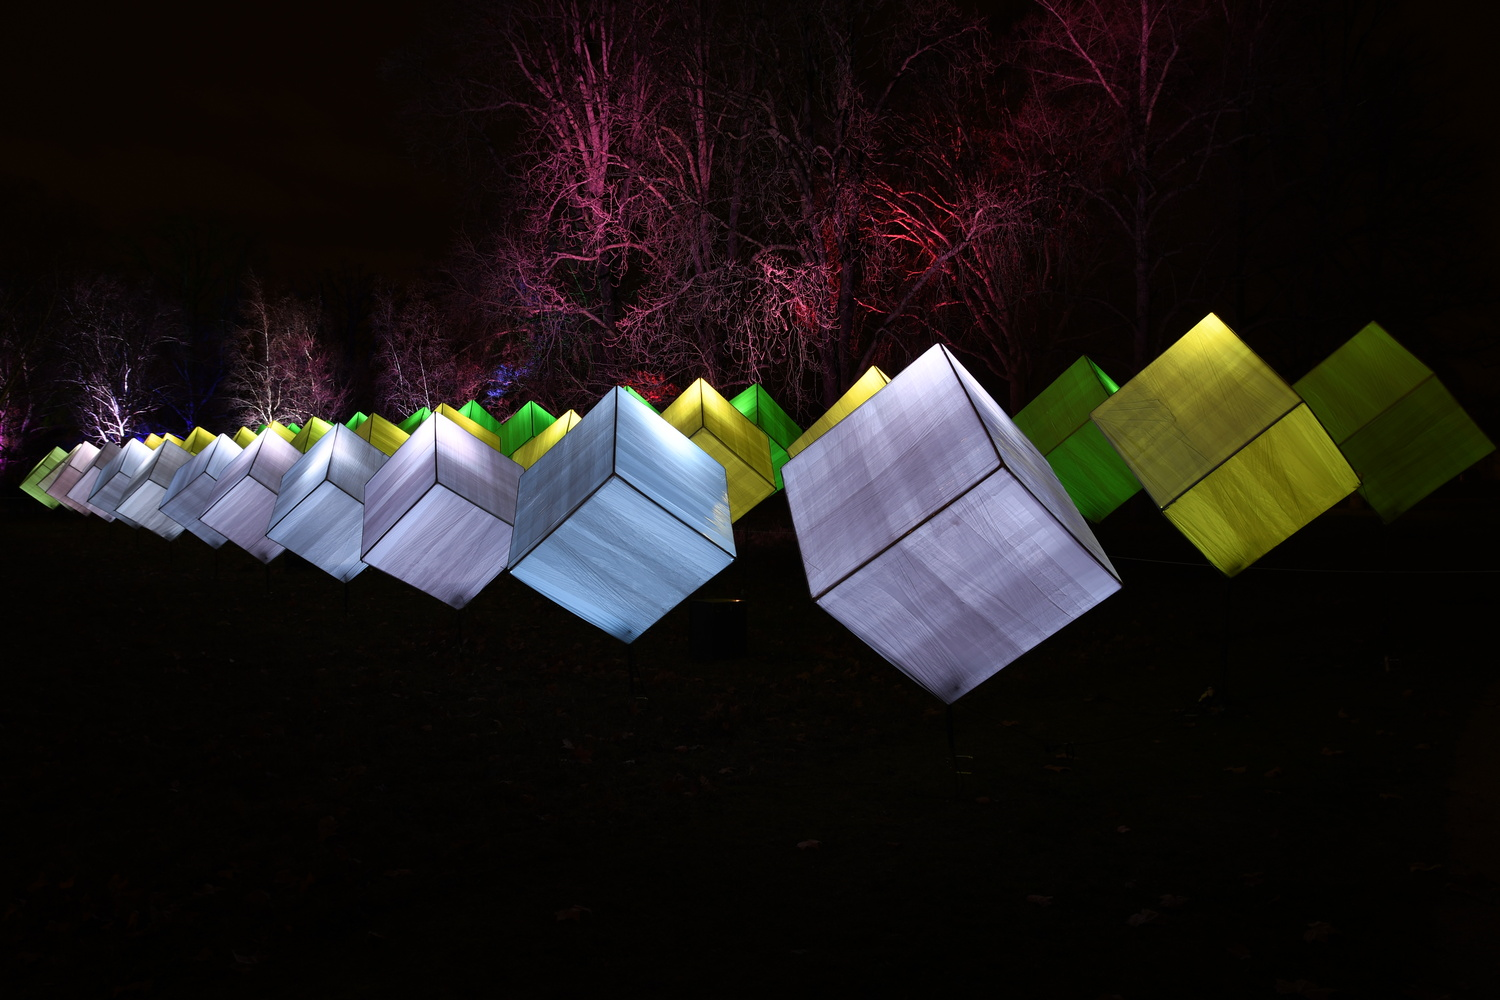 Cube repetition by Tobias Broch